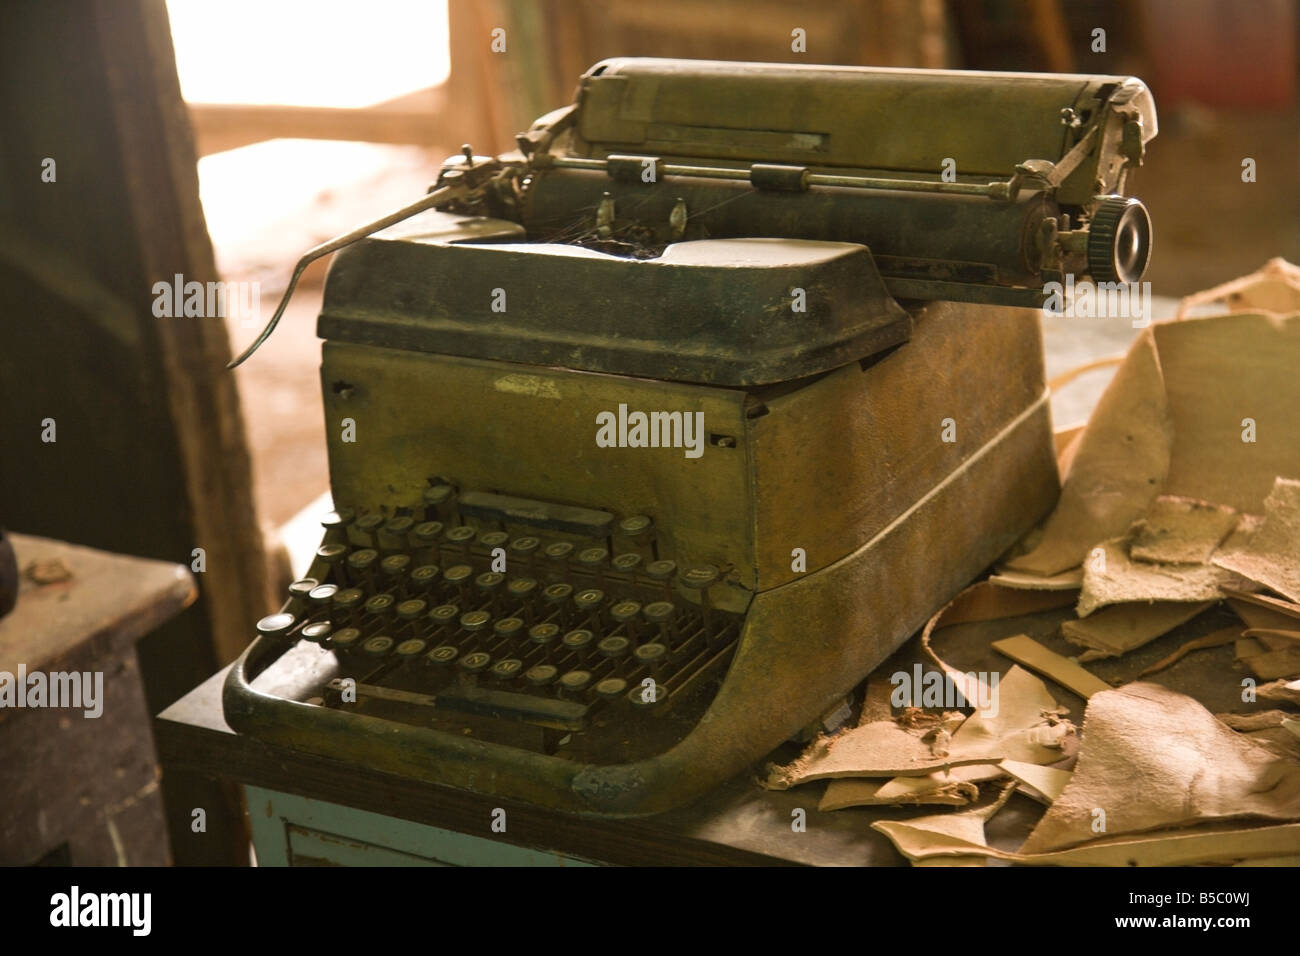 Type writer, and leather products - Stock Image